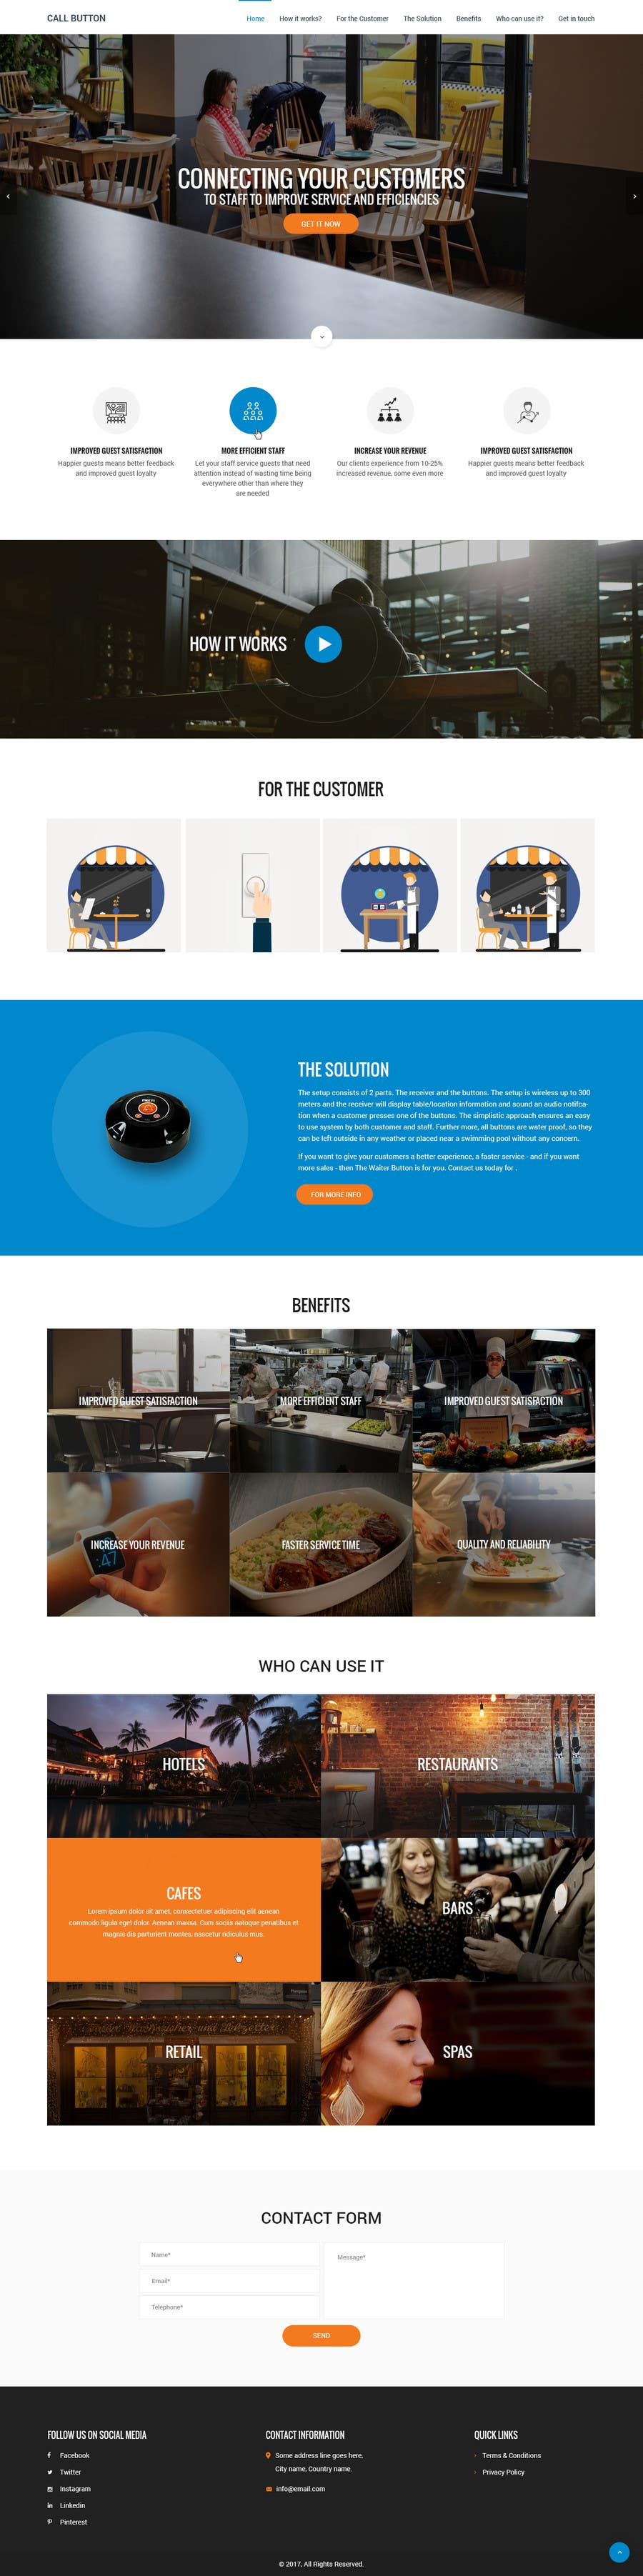 Proposition n°30 du concours Design a Website Mockup for a new product